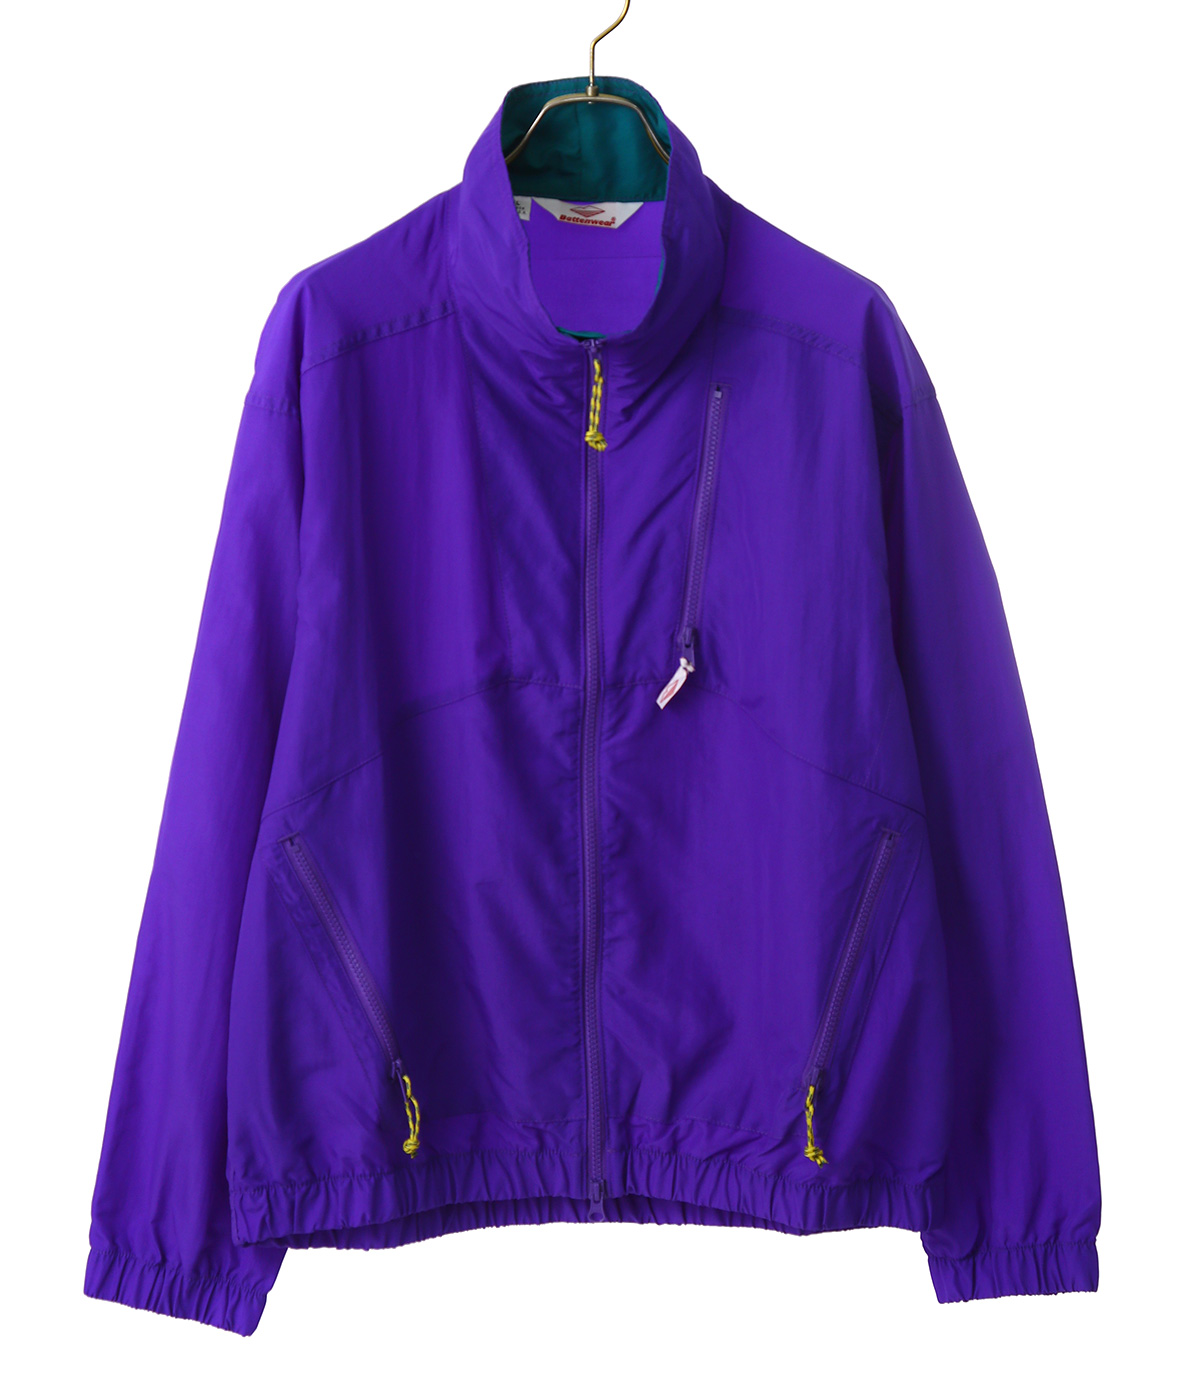 NYLON JUMP JACKET -PURPLE/TEAL-